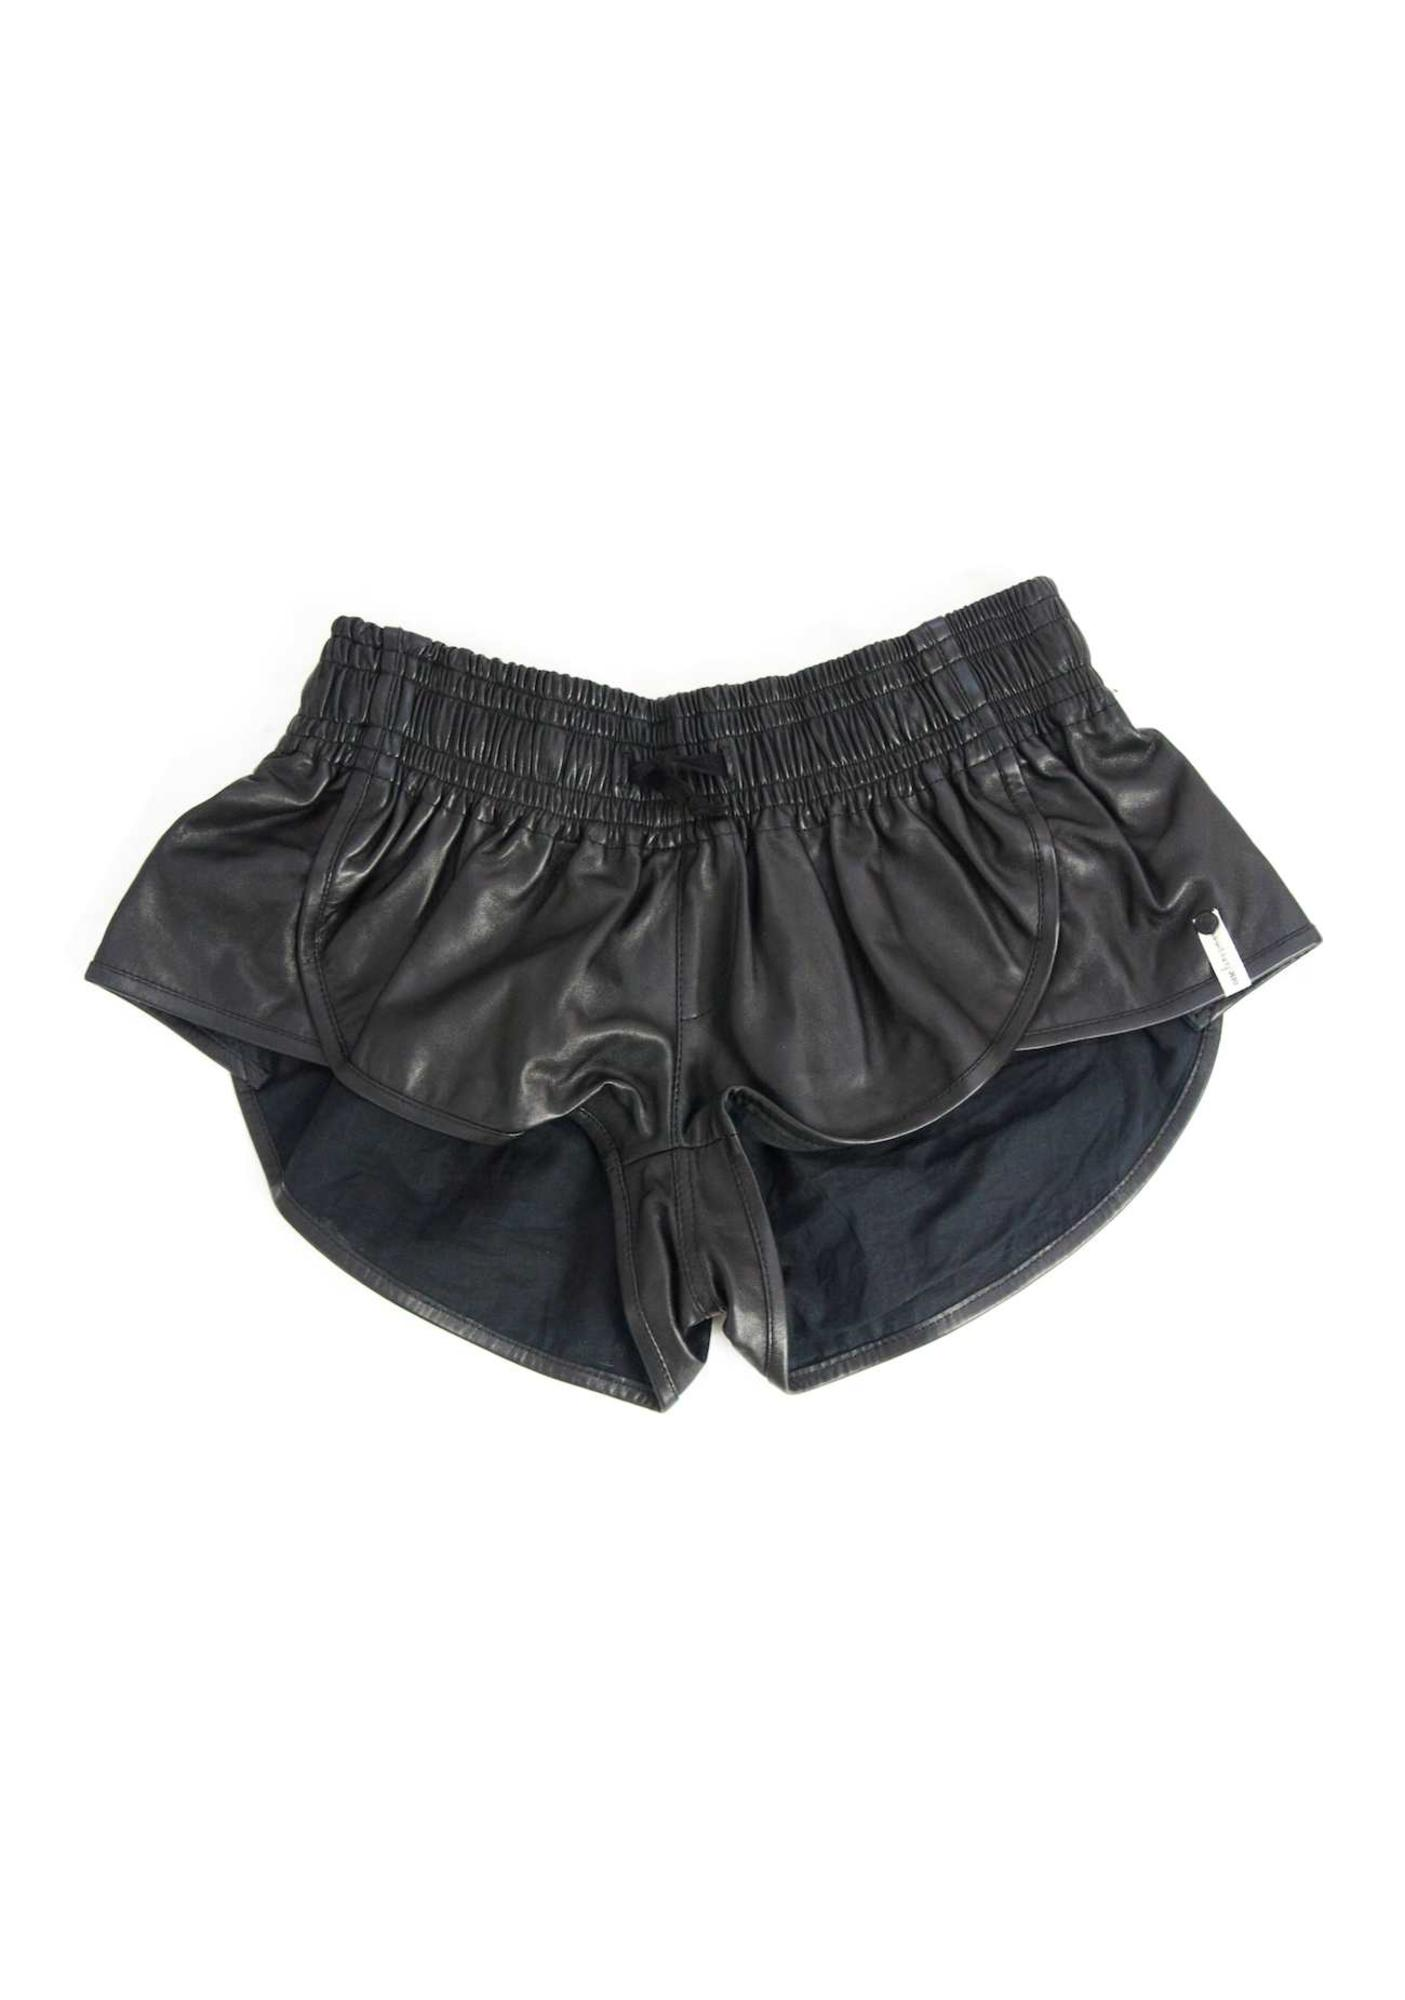 One Teaspoon Vagabond Leather Shorts